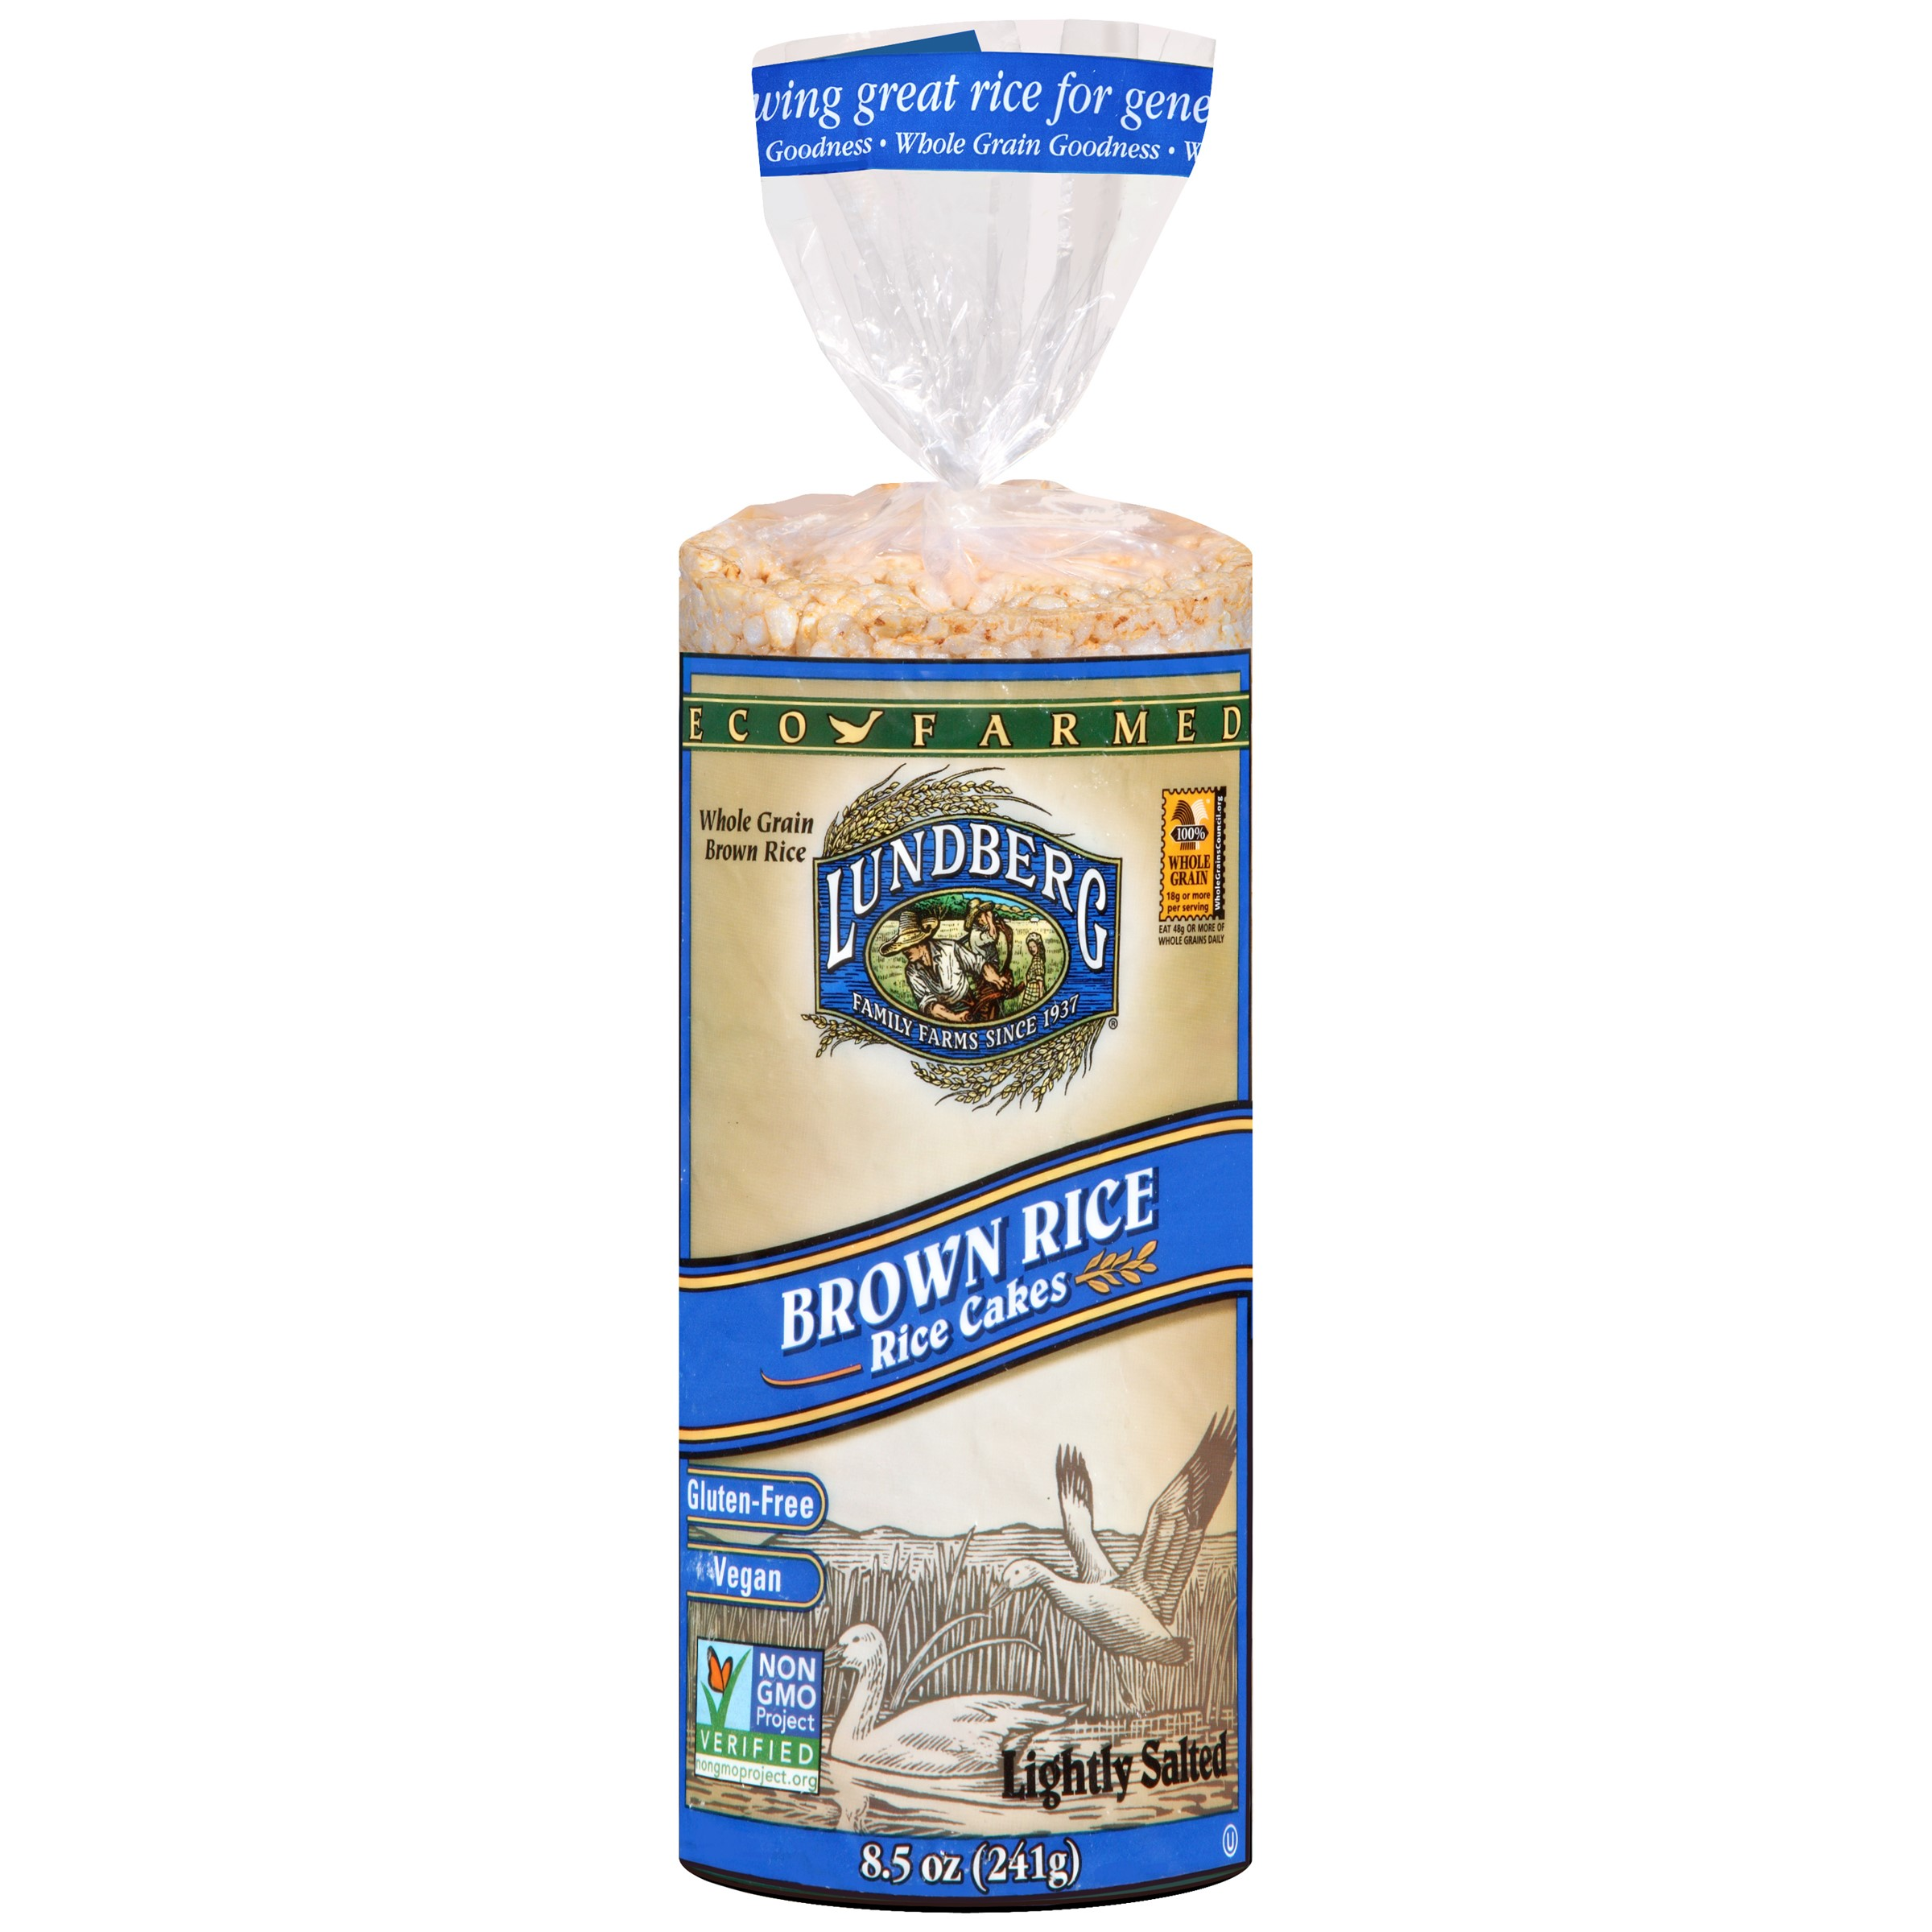 Lundberg Brown Rice Cakes Lightly Salted 8.5 oz - Vegan